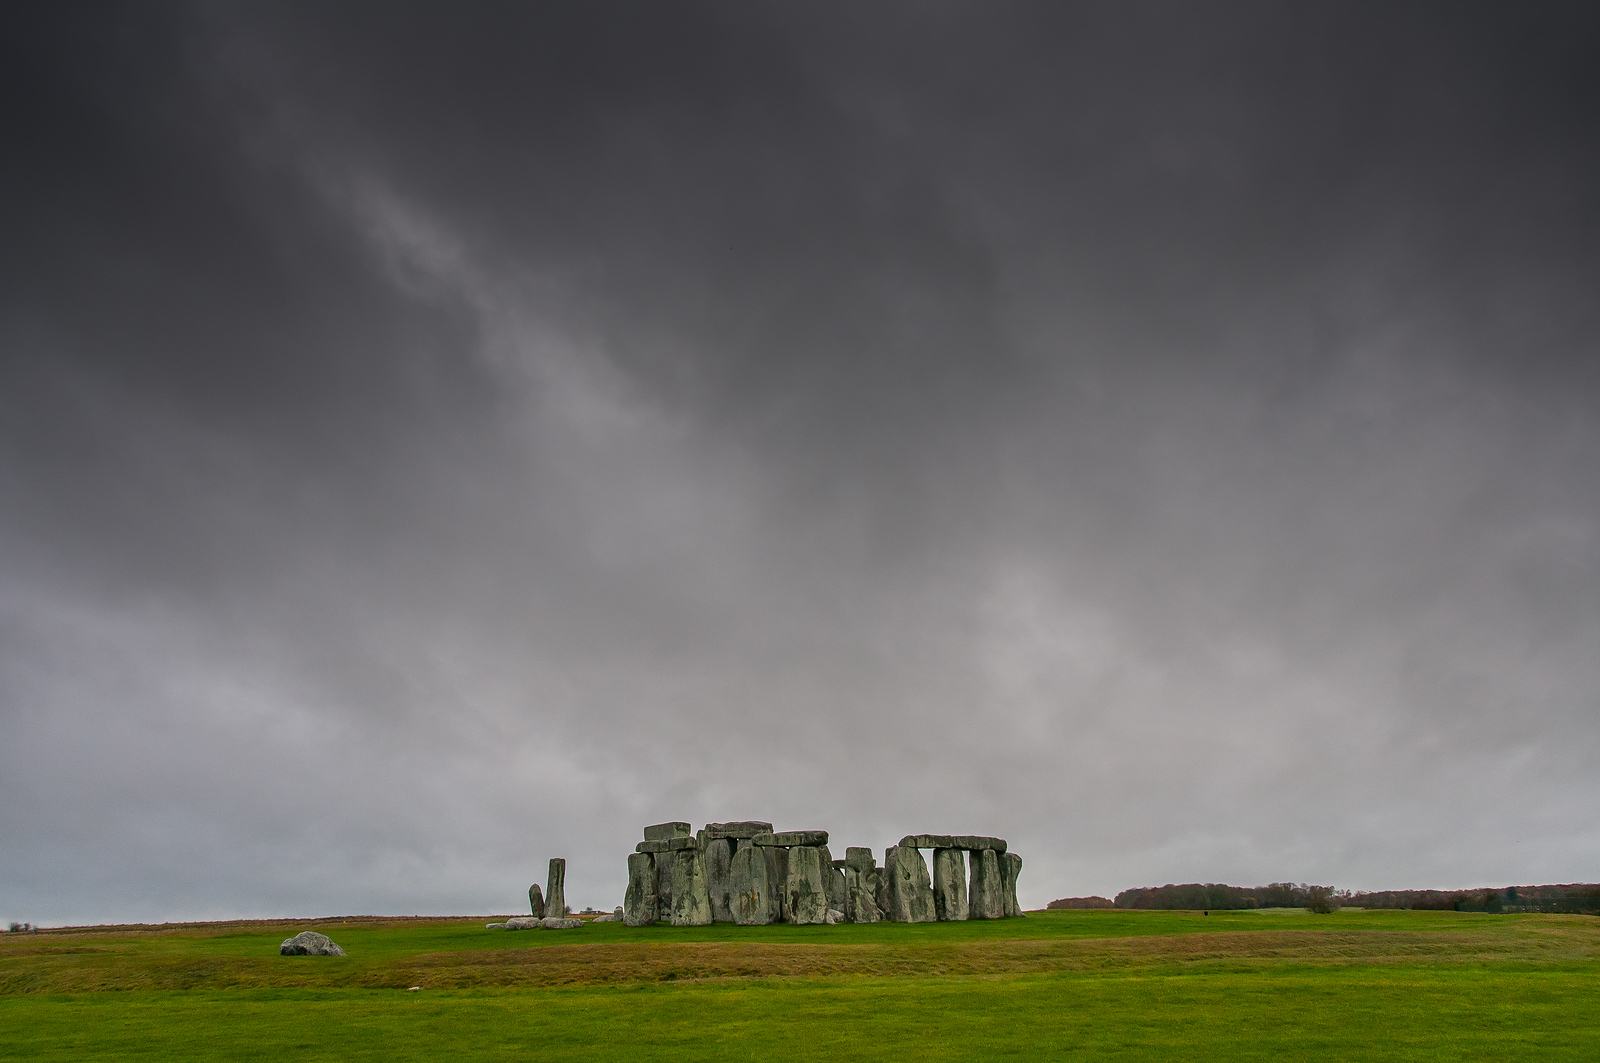 Stonehenge, Avebury and Associated Sites UNESCO World Heritage Site